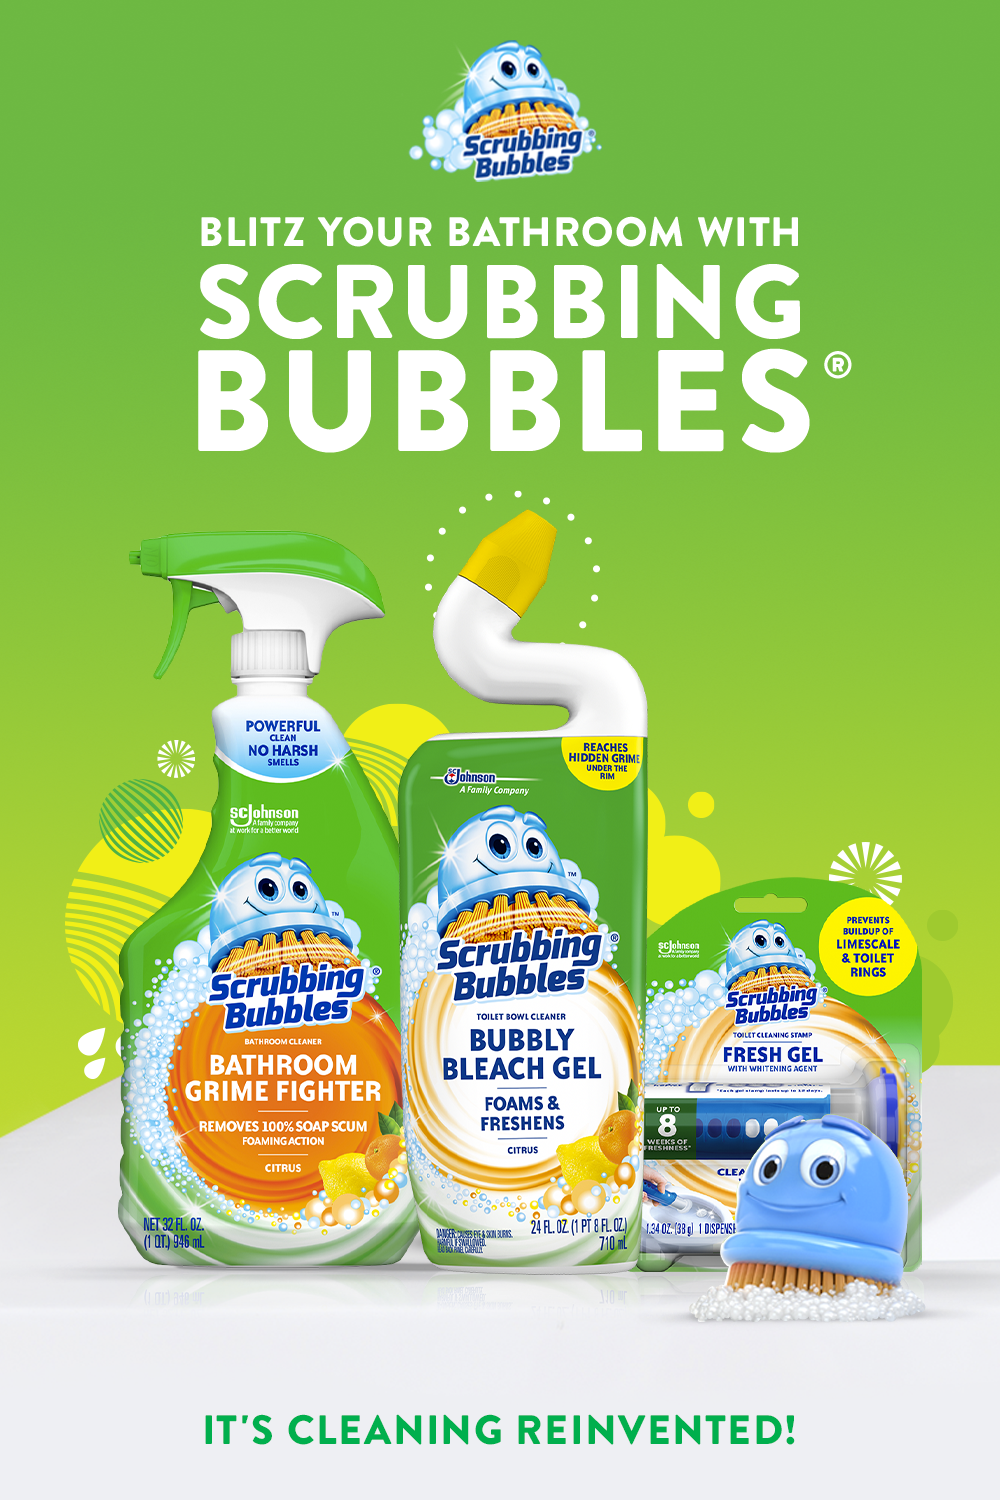 Perfect Your Cleaning Schedule With Scrubbing Bubbles Fight Grime On Sinks And Countertops With Bathroom Grime Fi Scrubbing Bubbles Cleaning Bathroom Cleaning